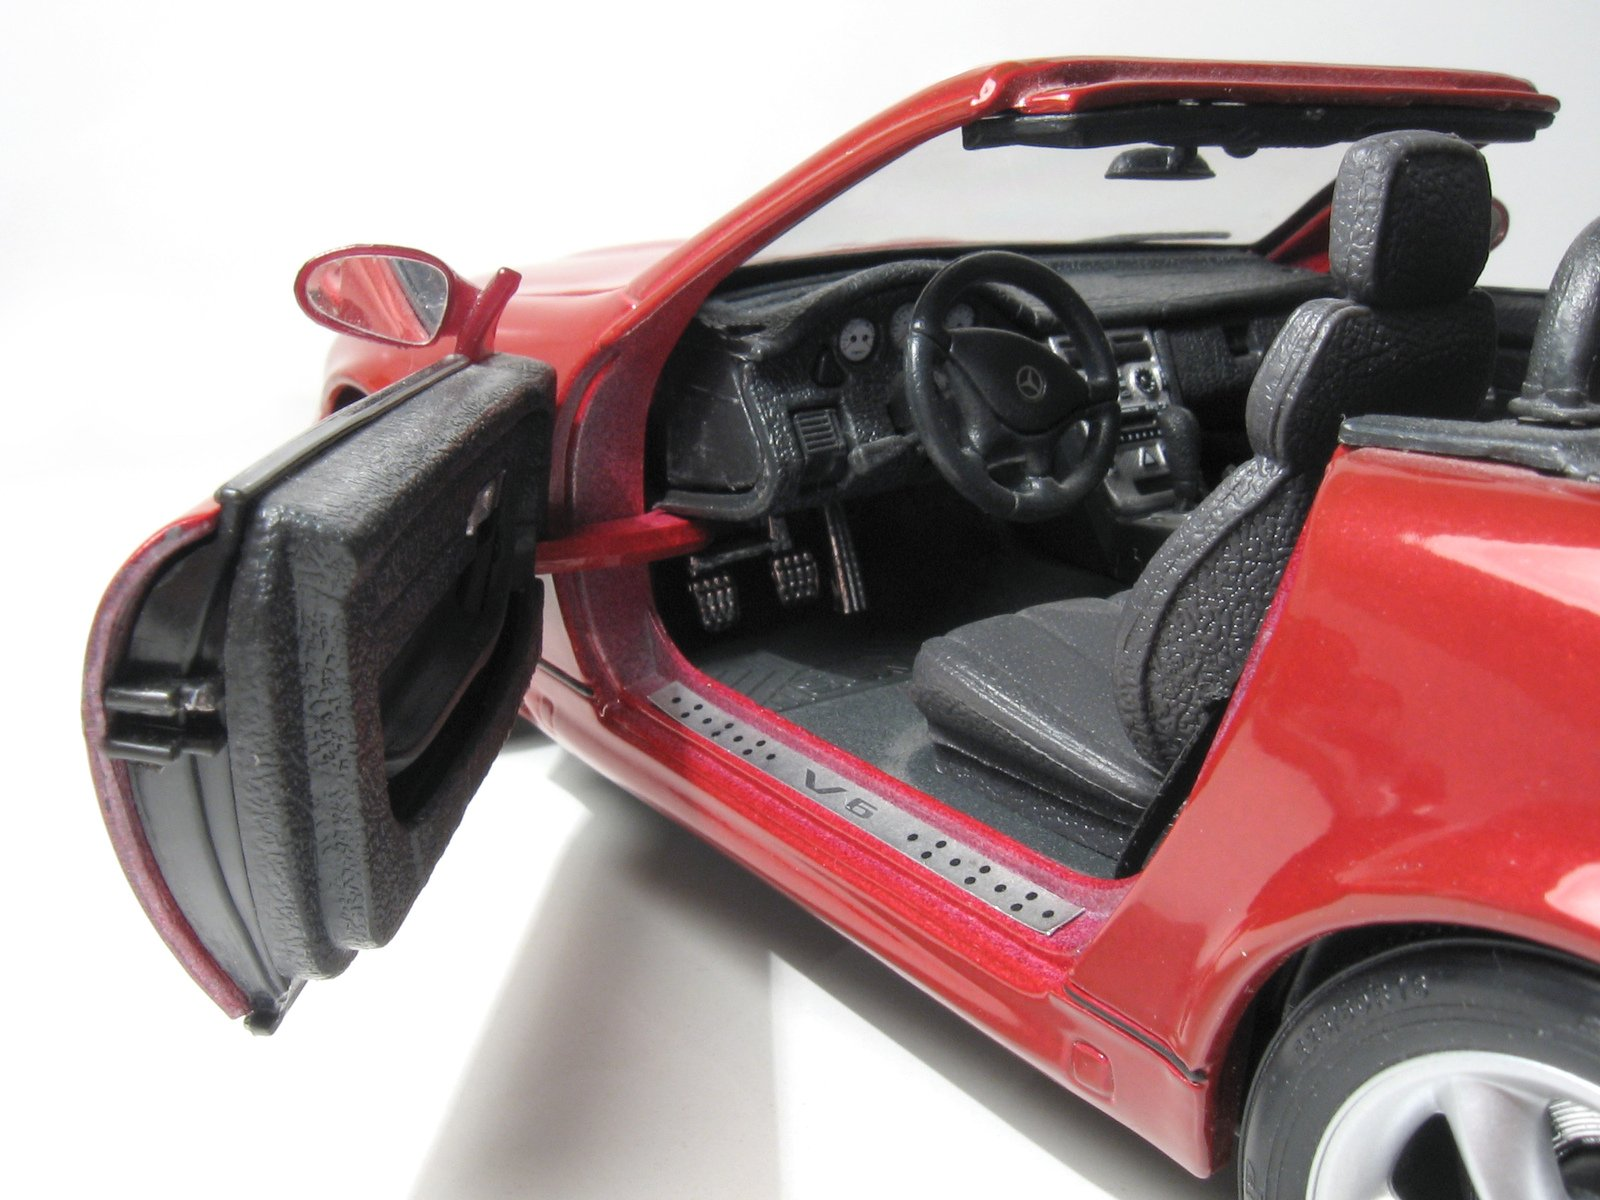 A scale model of a red car